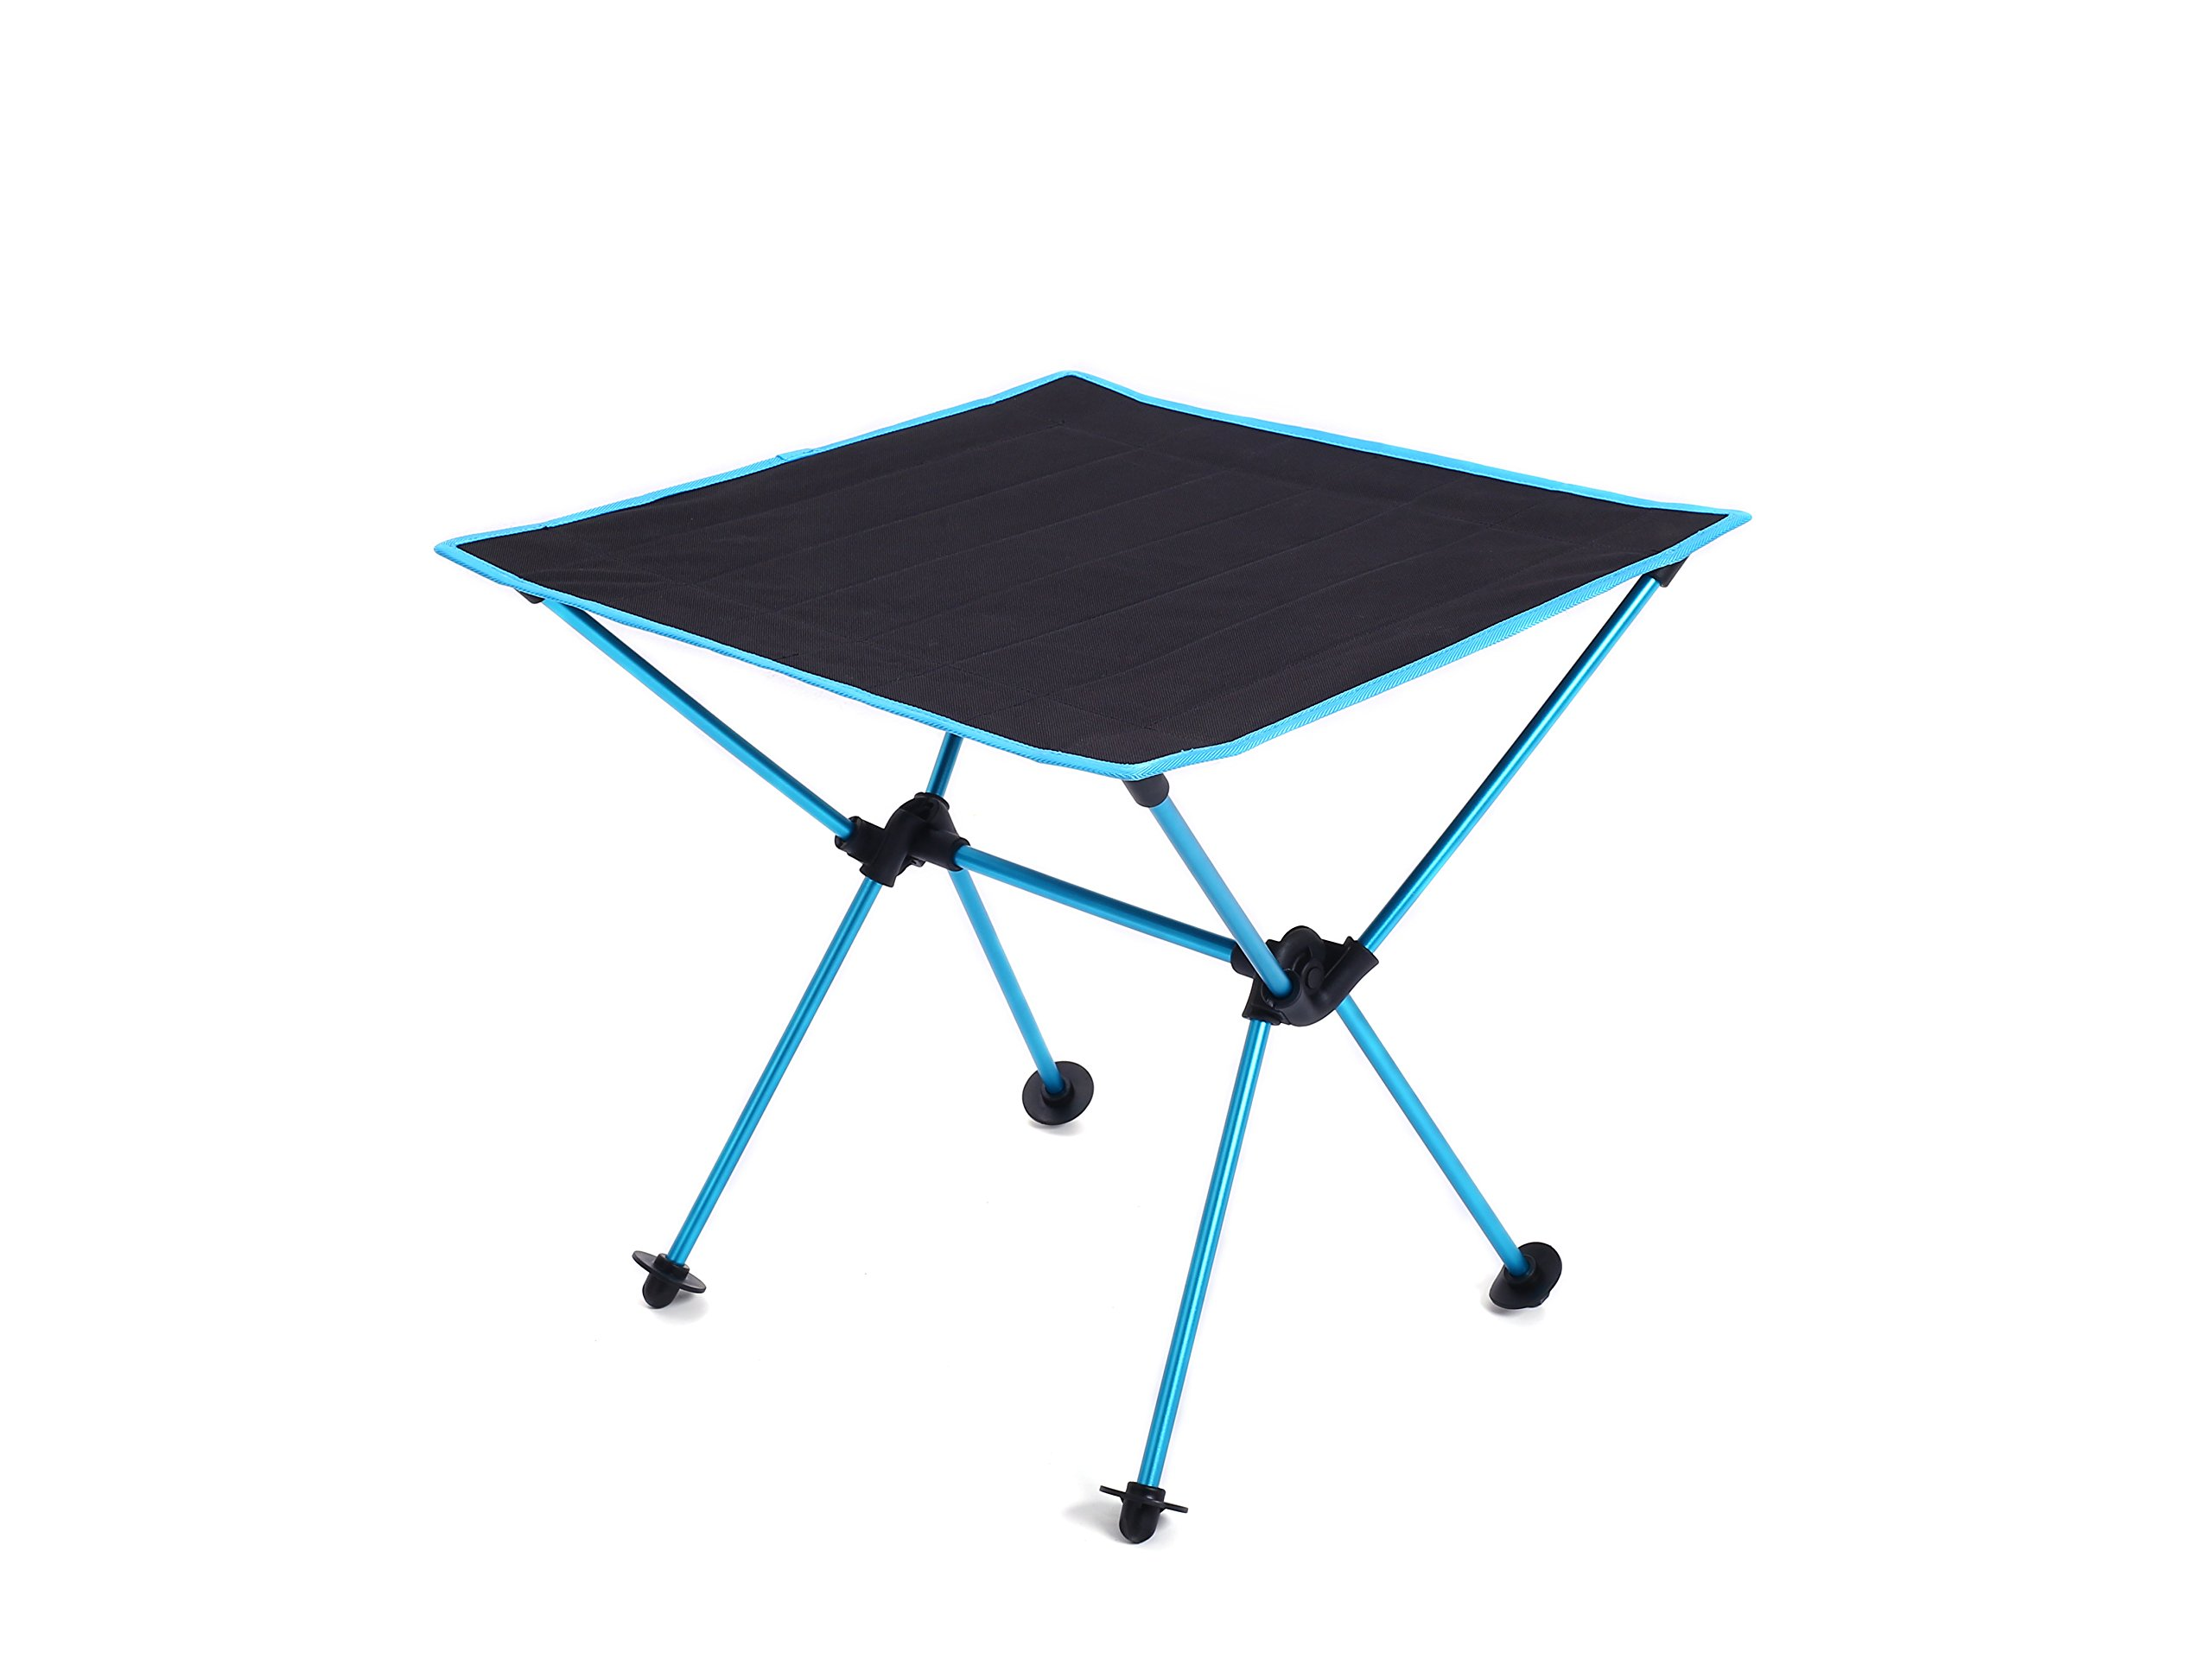 MUMAI Portable Lightweight Folding Table with Carry Bag Waterproof Oxford cloth Aluminum alloy Outdoor Camping BBQ Picnic Table (Light blue)